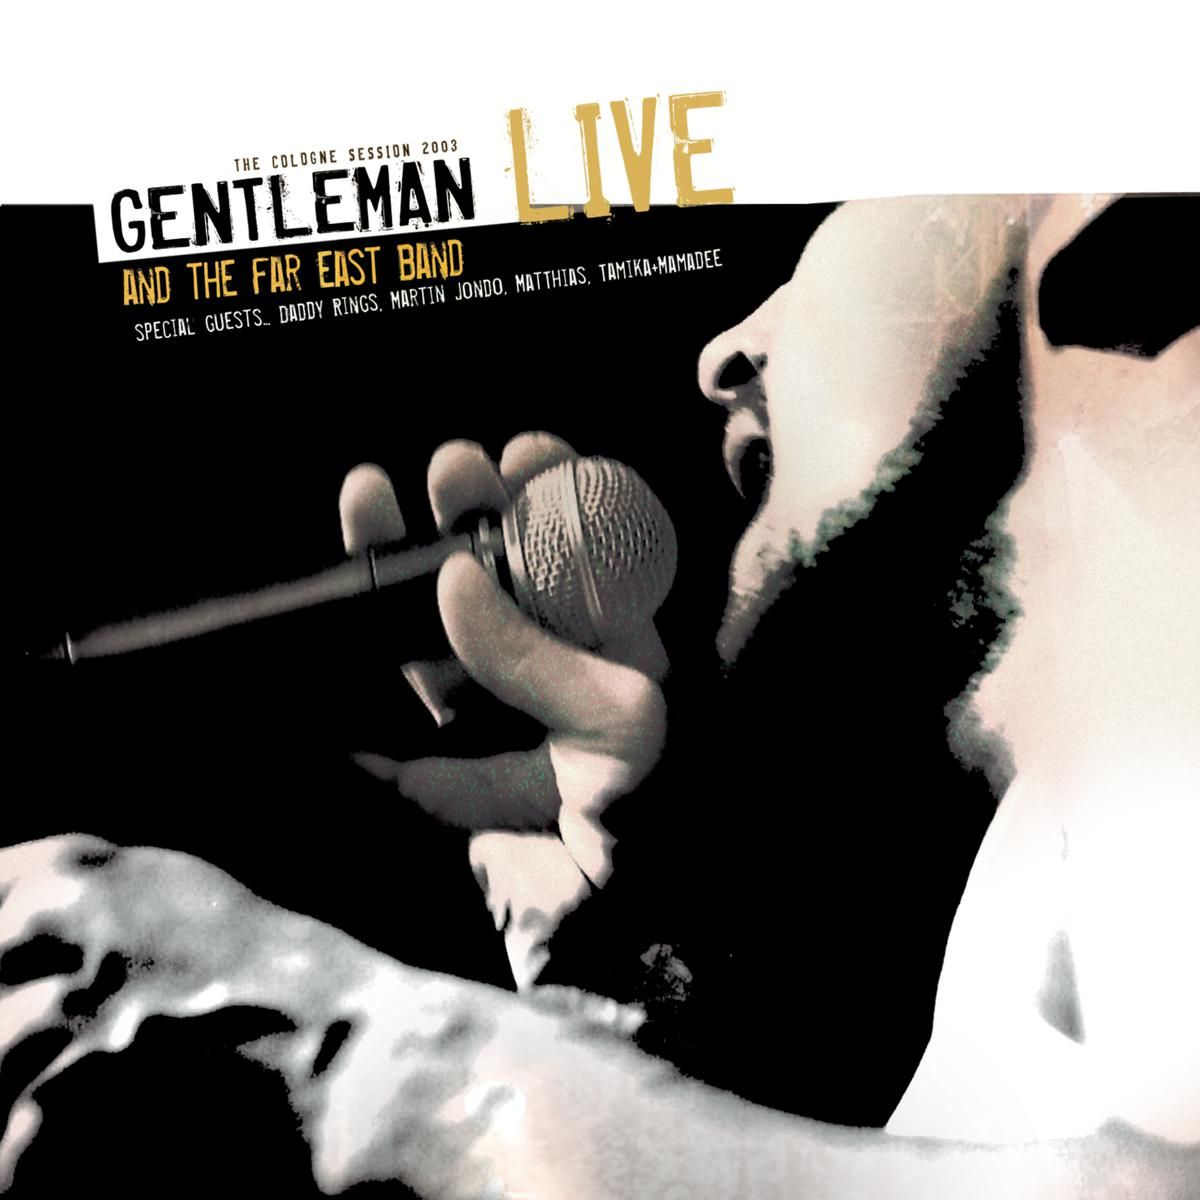 Gentleman - Gentleman & The Far East Band - Live album cover